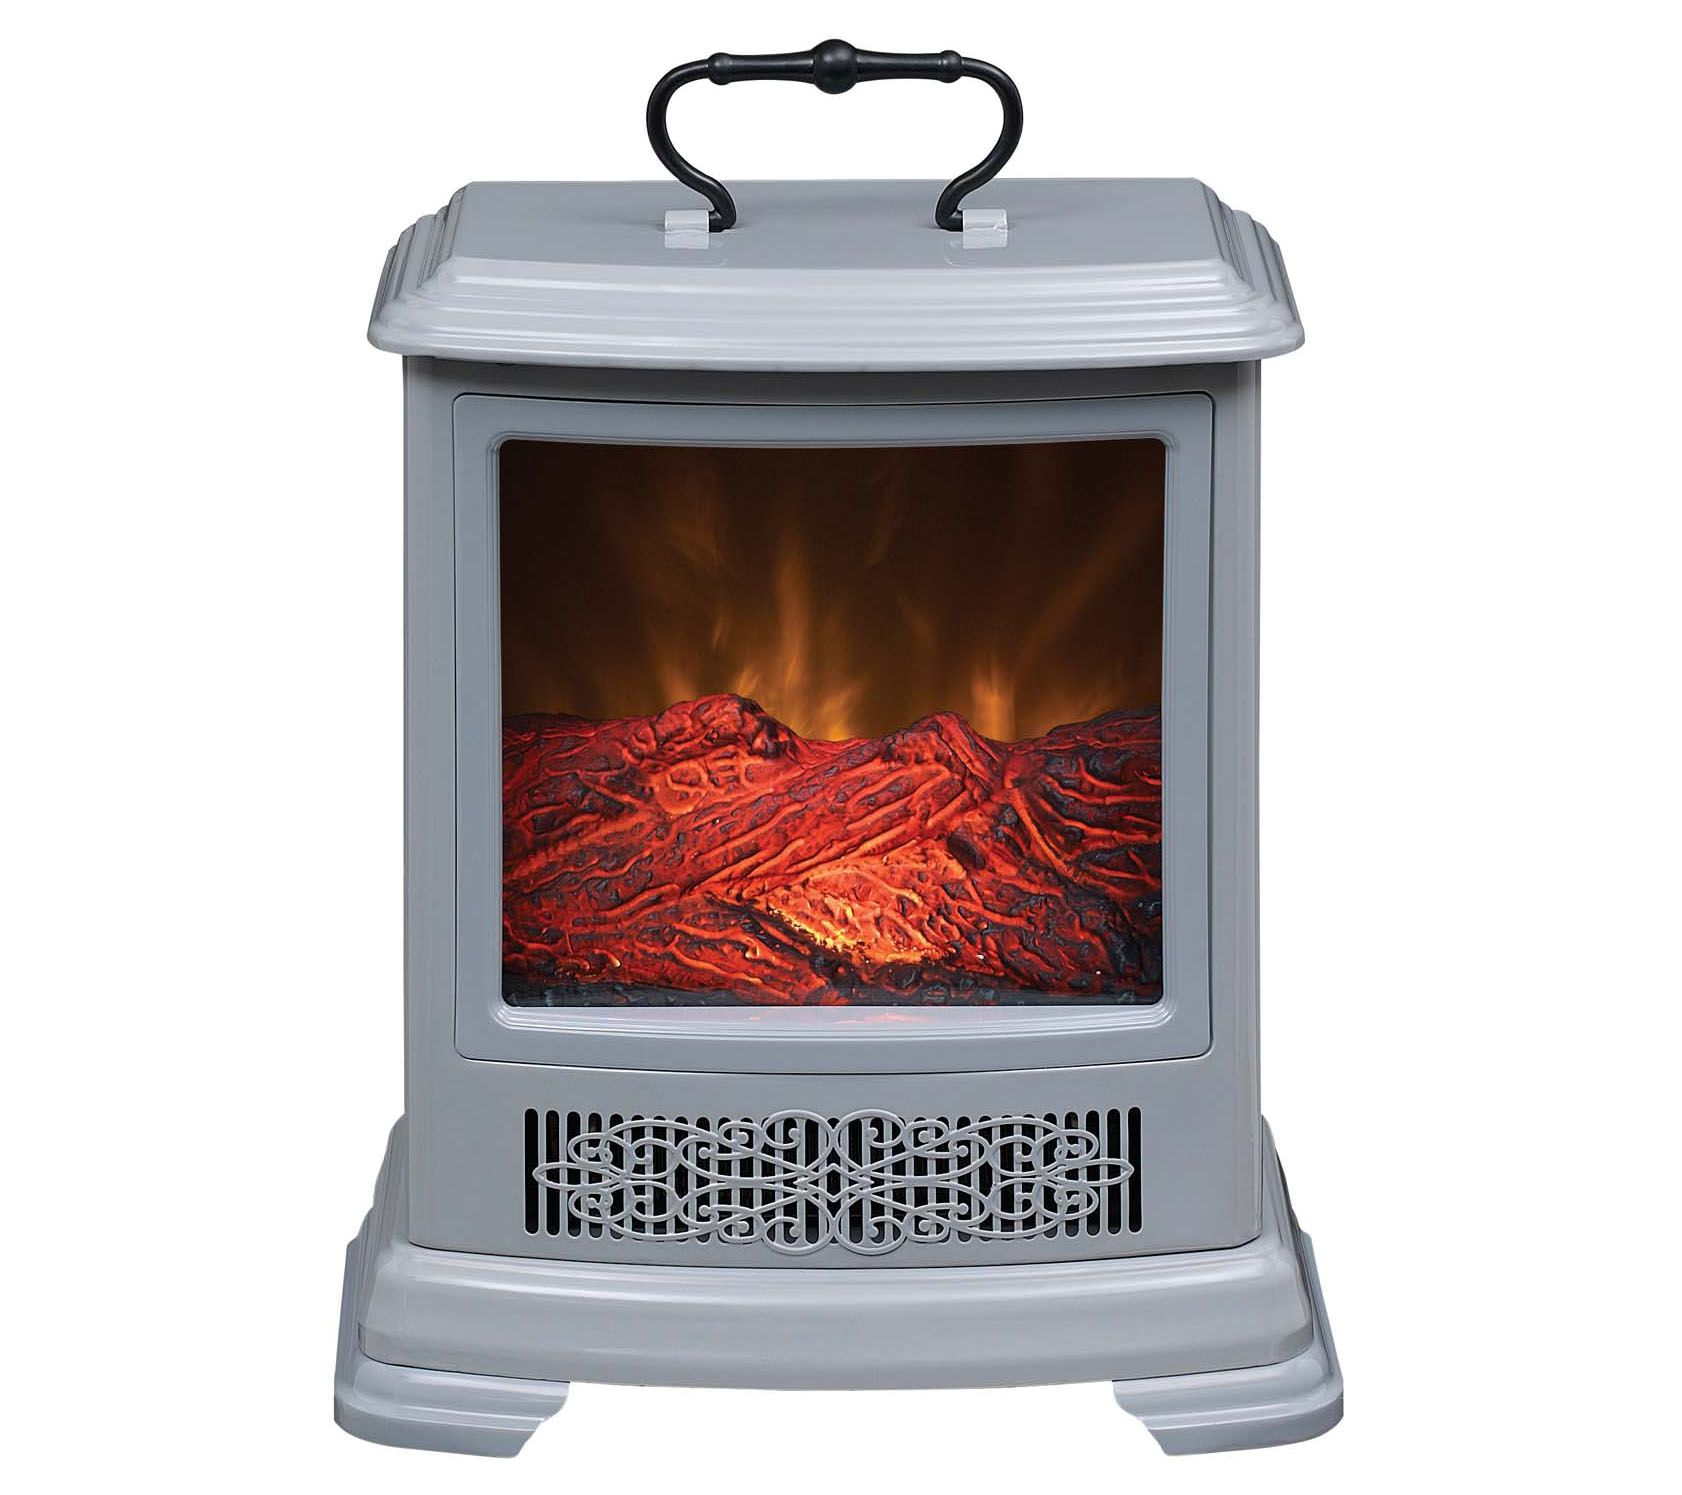 v35008.001 duraflame portable fireplaces & electric heaters for the home  at readyjetset.co